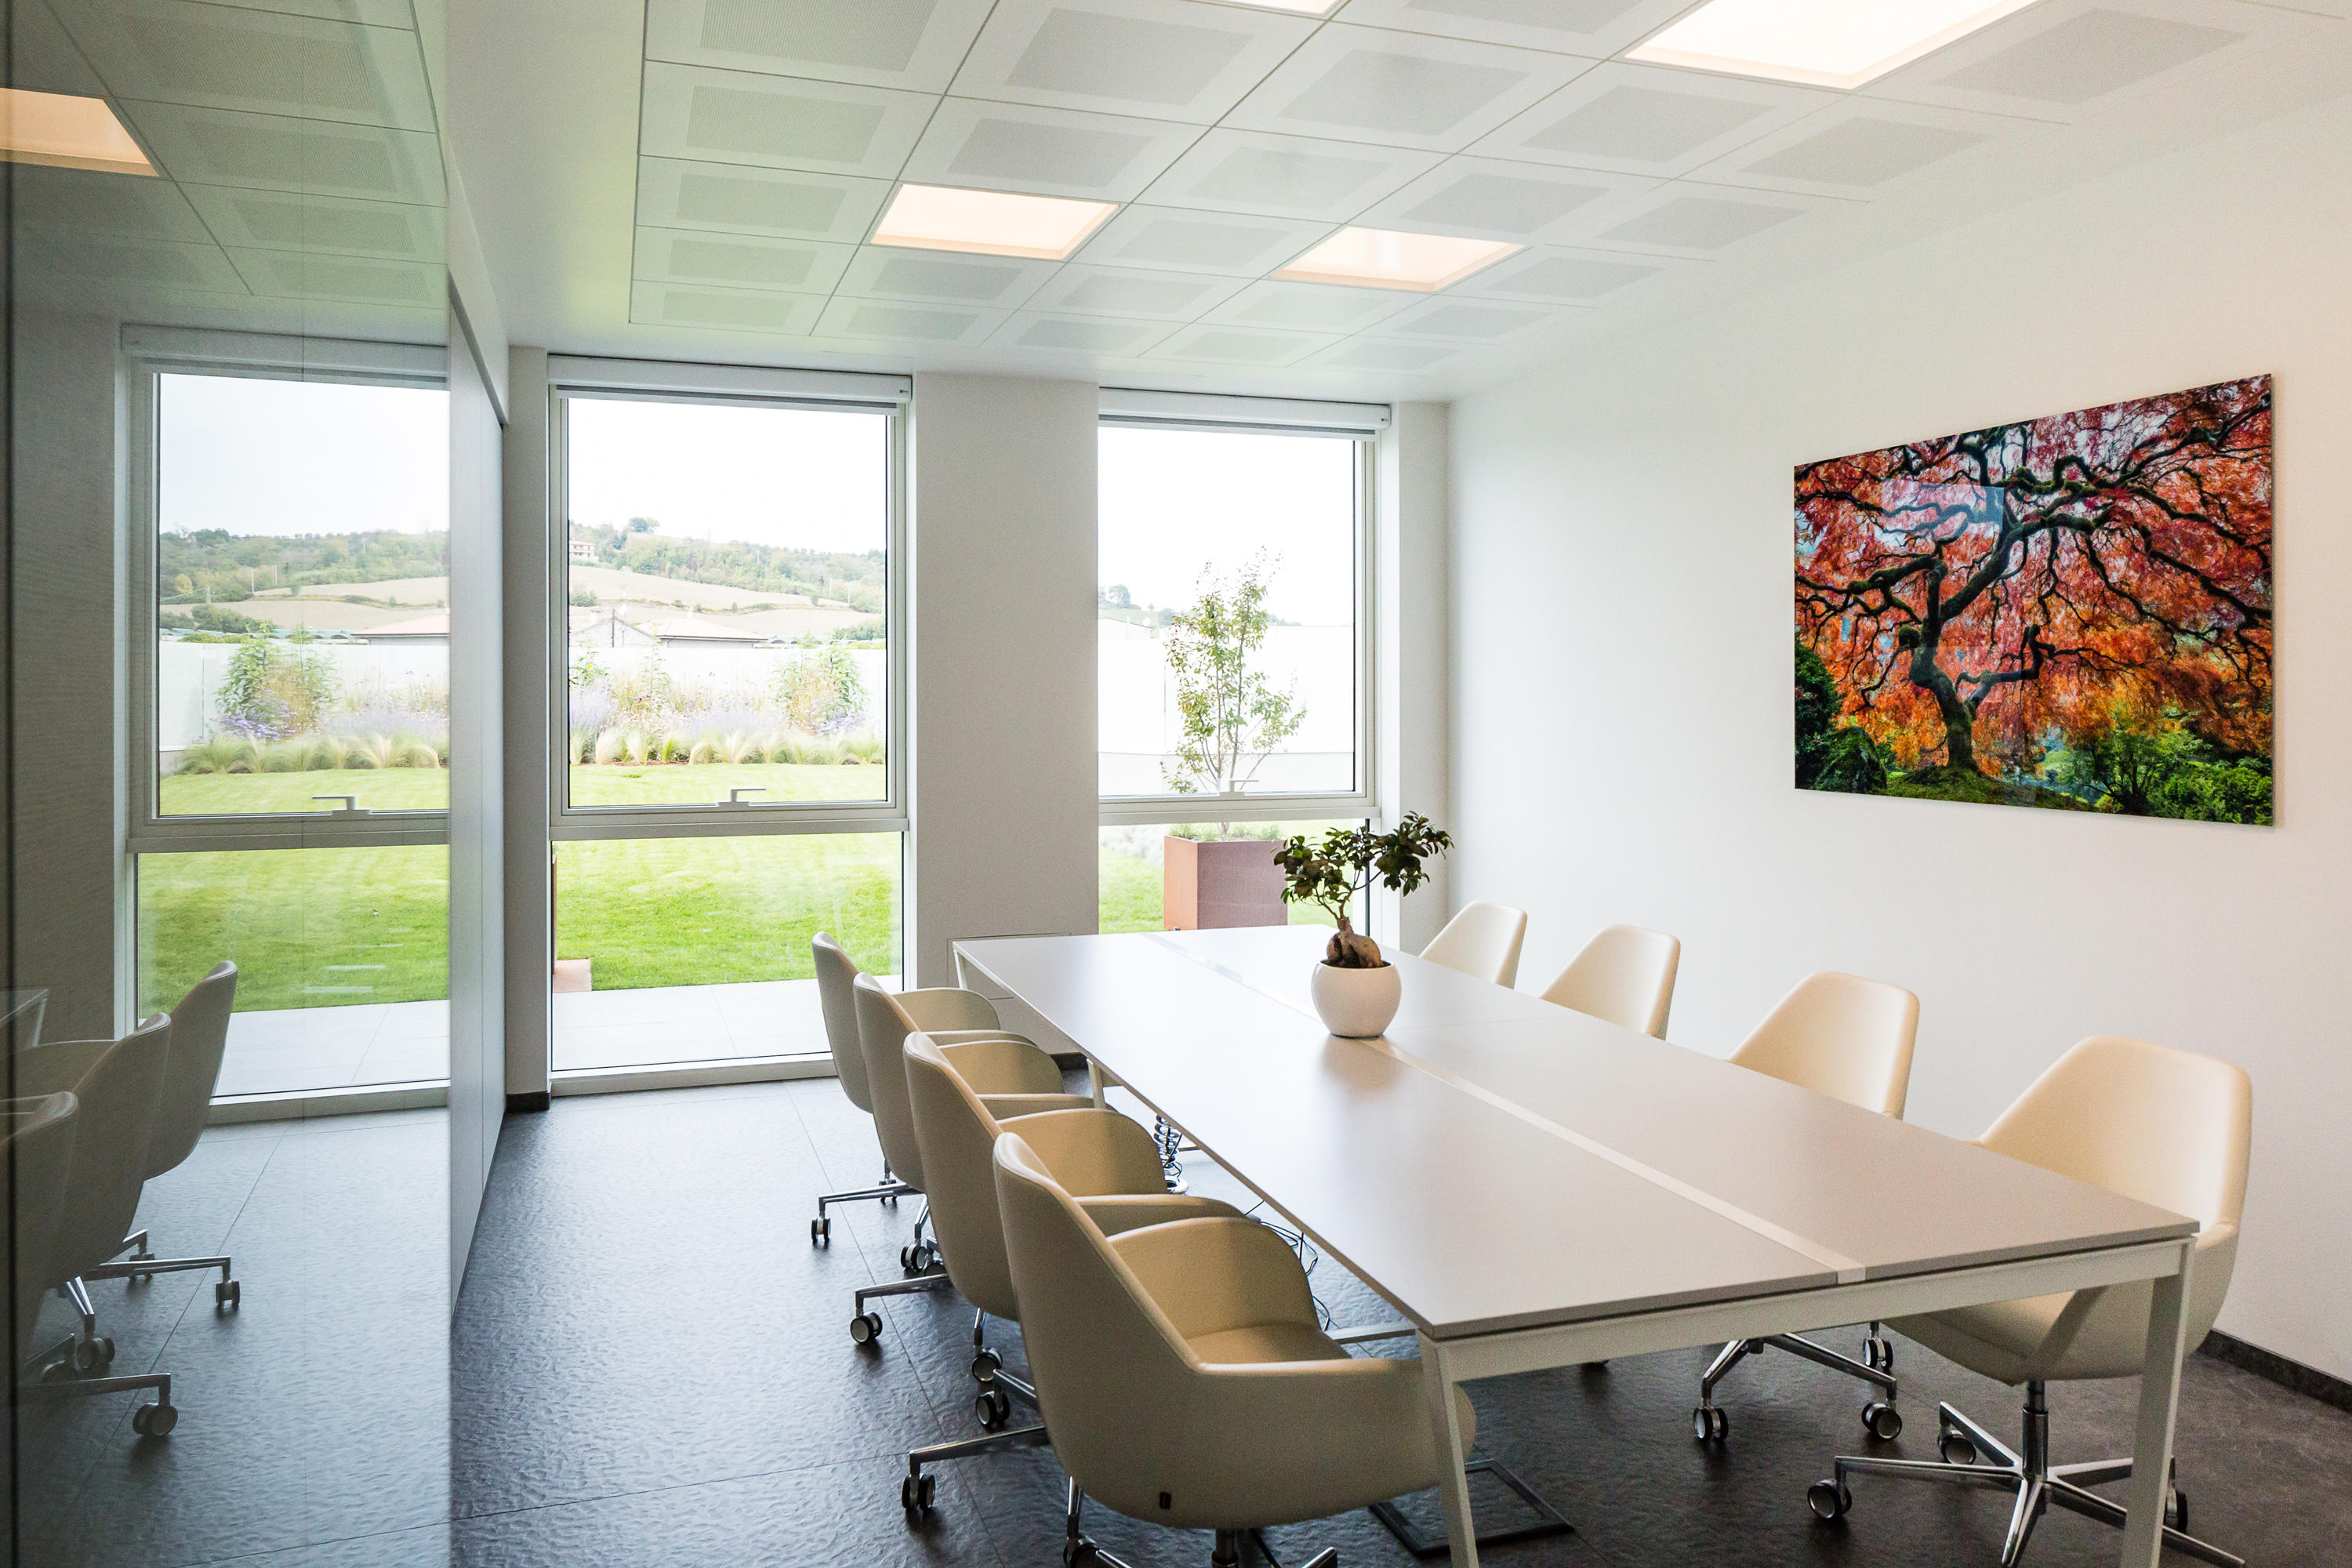 workspace lighting. intile workspace lighting by kreon fixing systems h